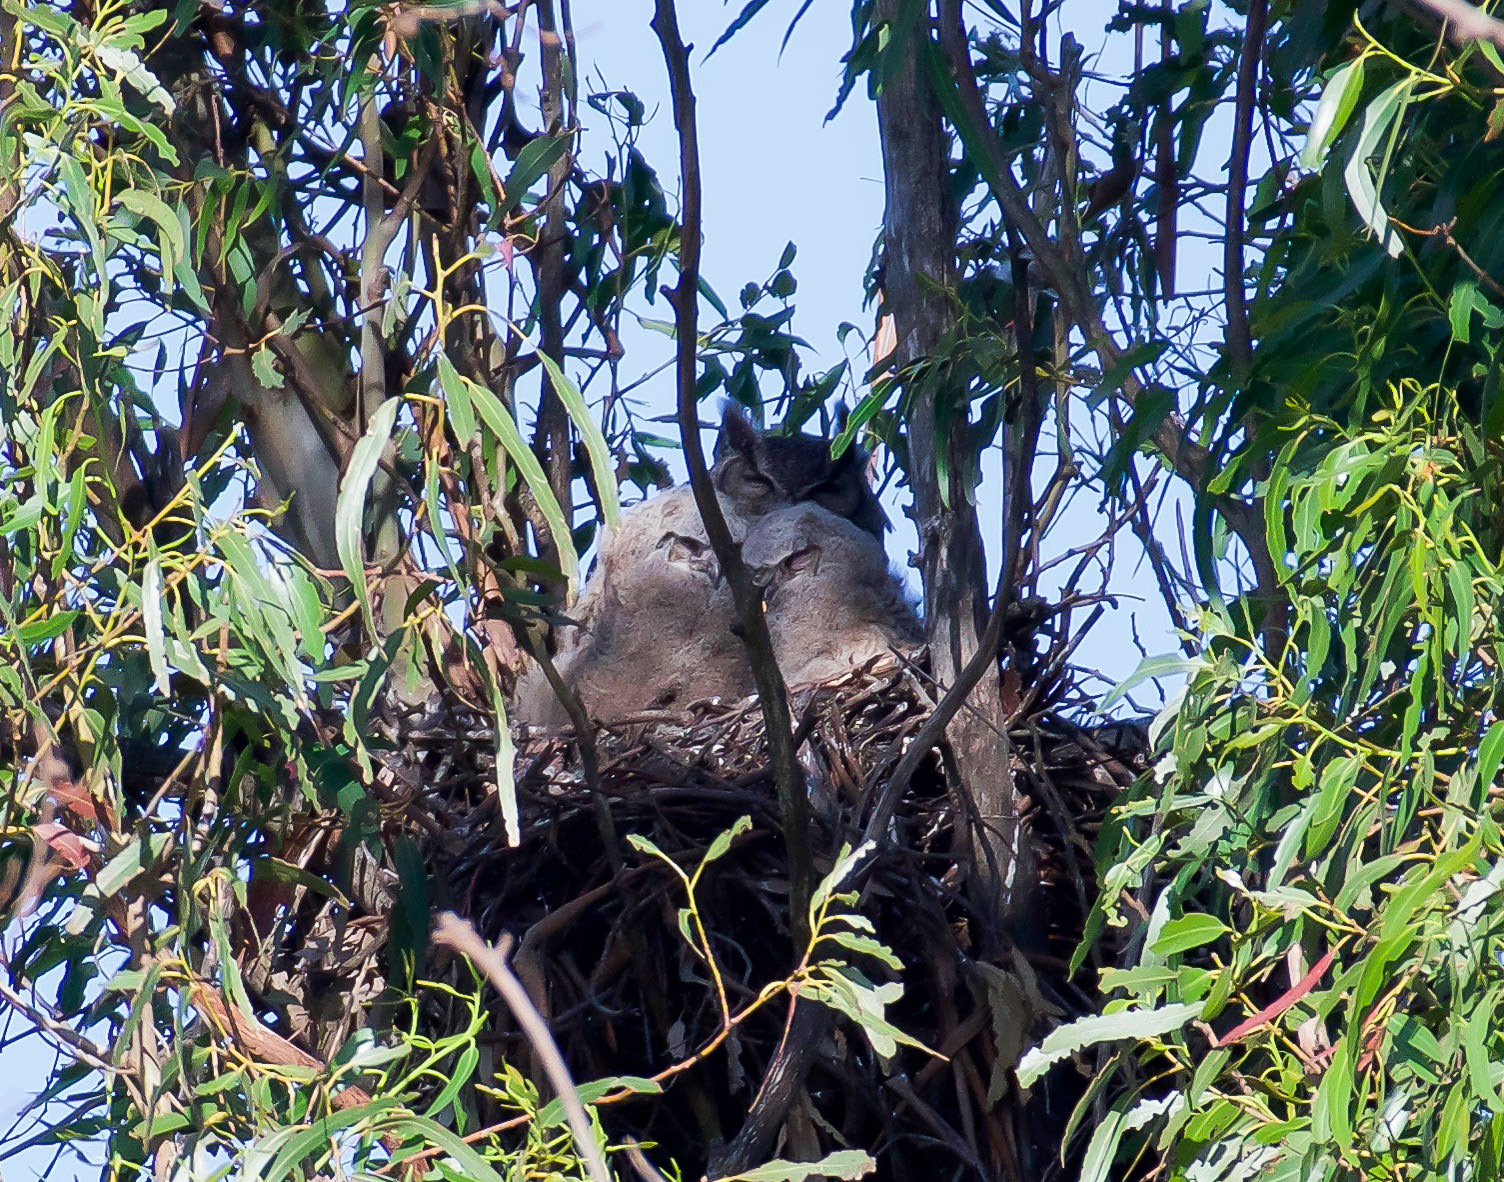 A mother great horned owl in the nest with her two baby owls.